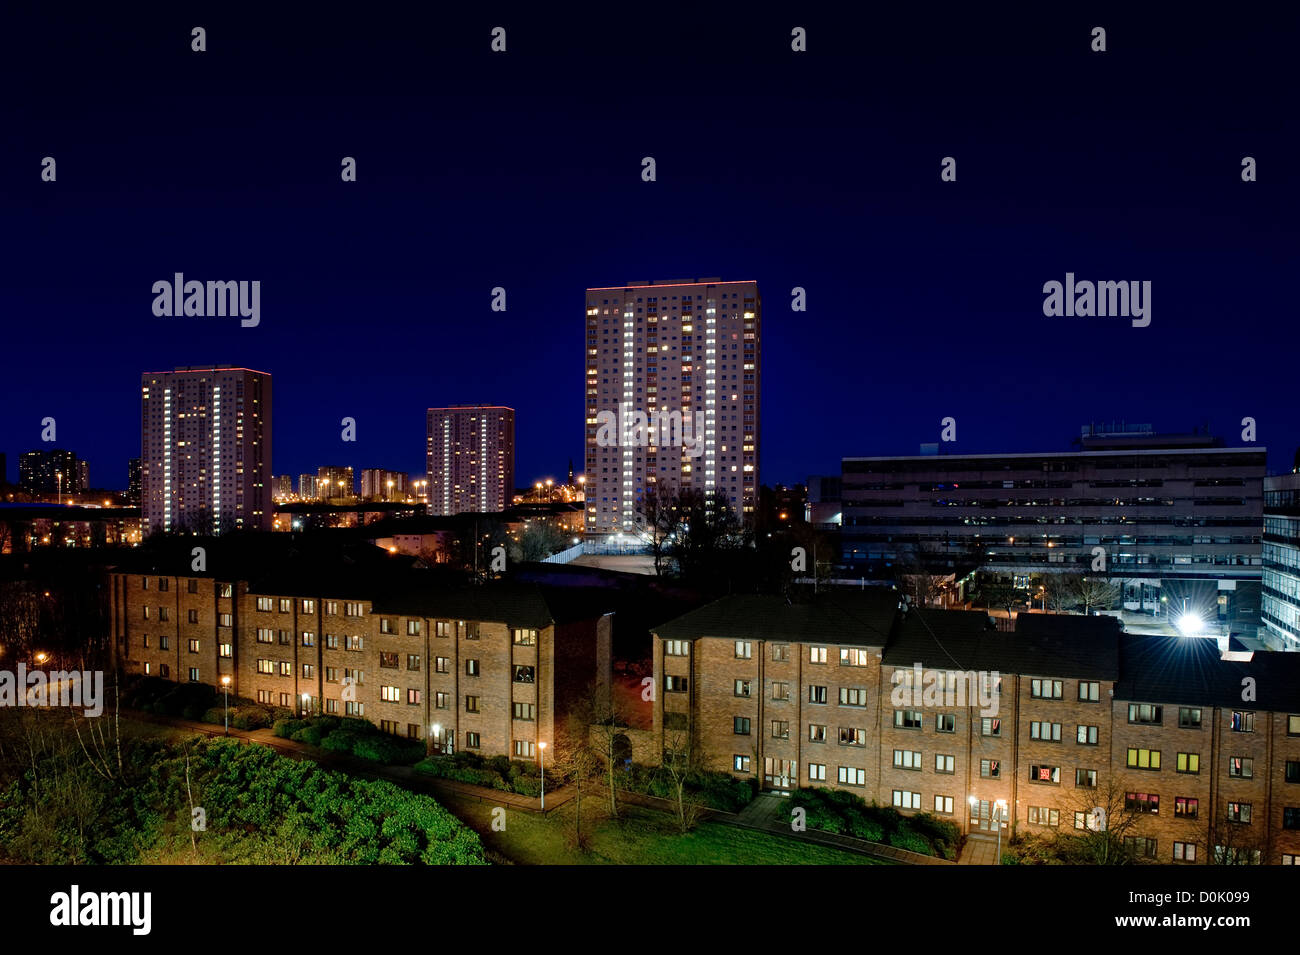 A view of high-rise flats in Glasgow. - Stock Image